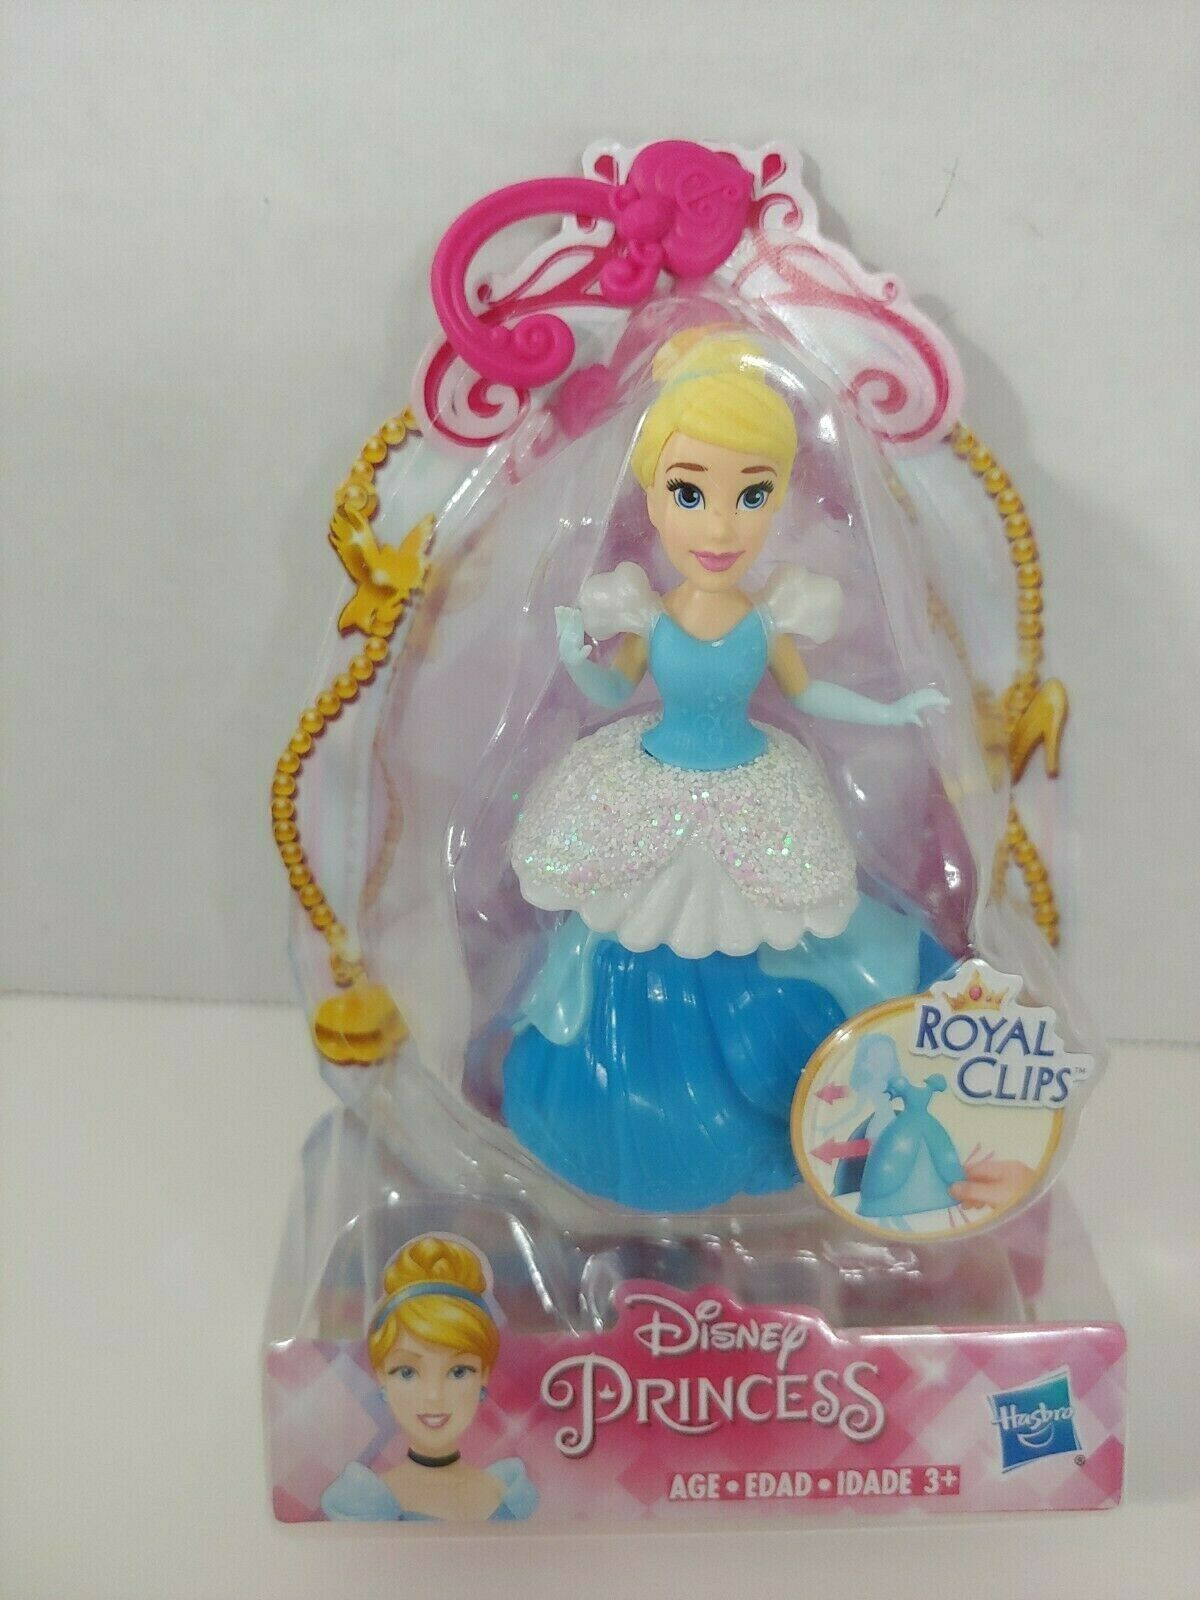 Primary image for Disney Princess Cinderella doll Hasbro Royal clips clip on dress